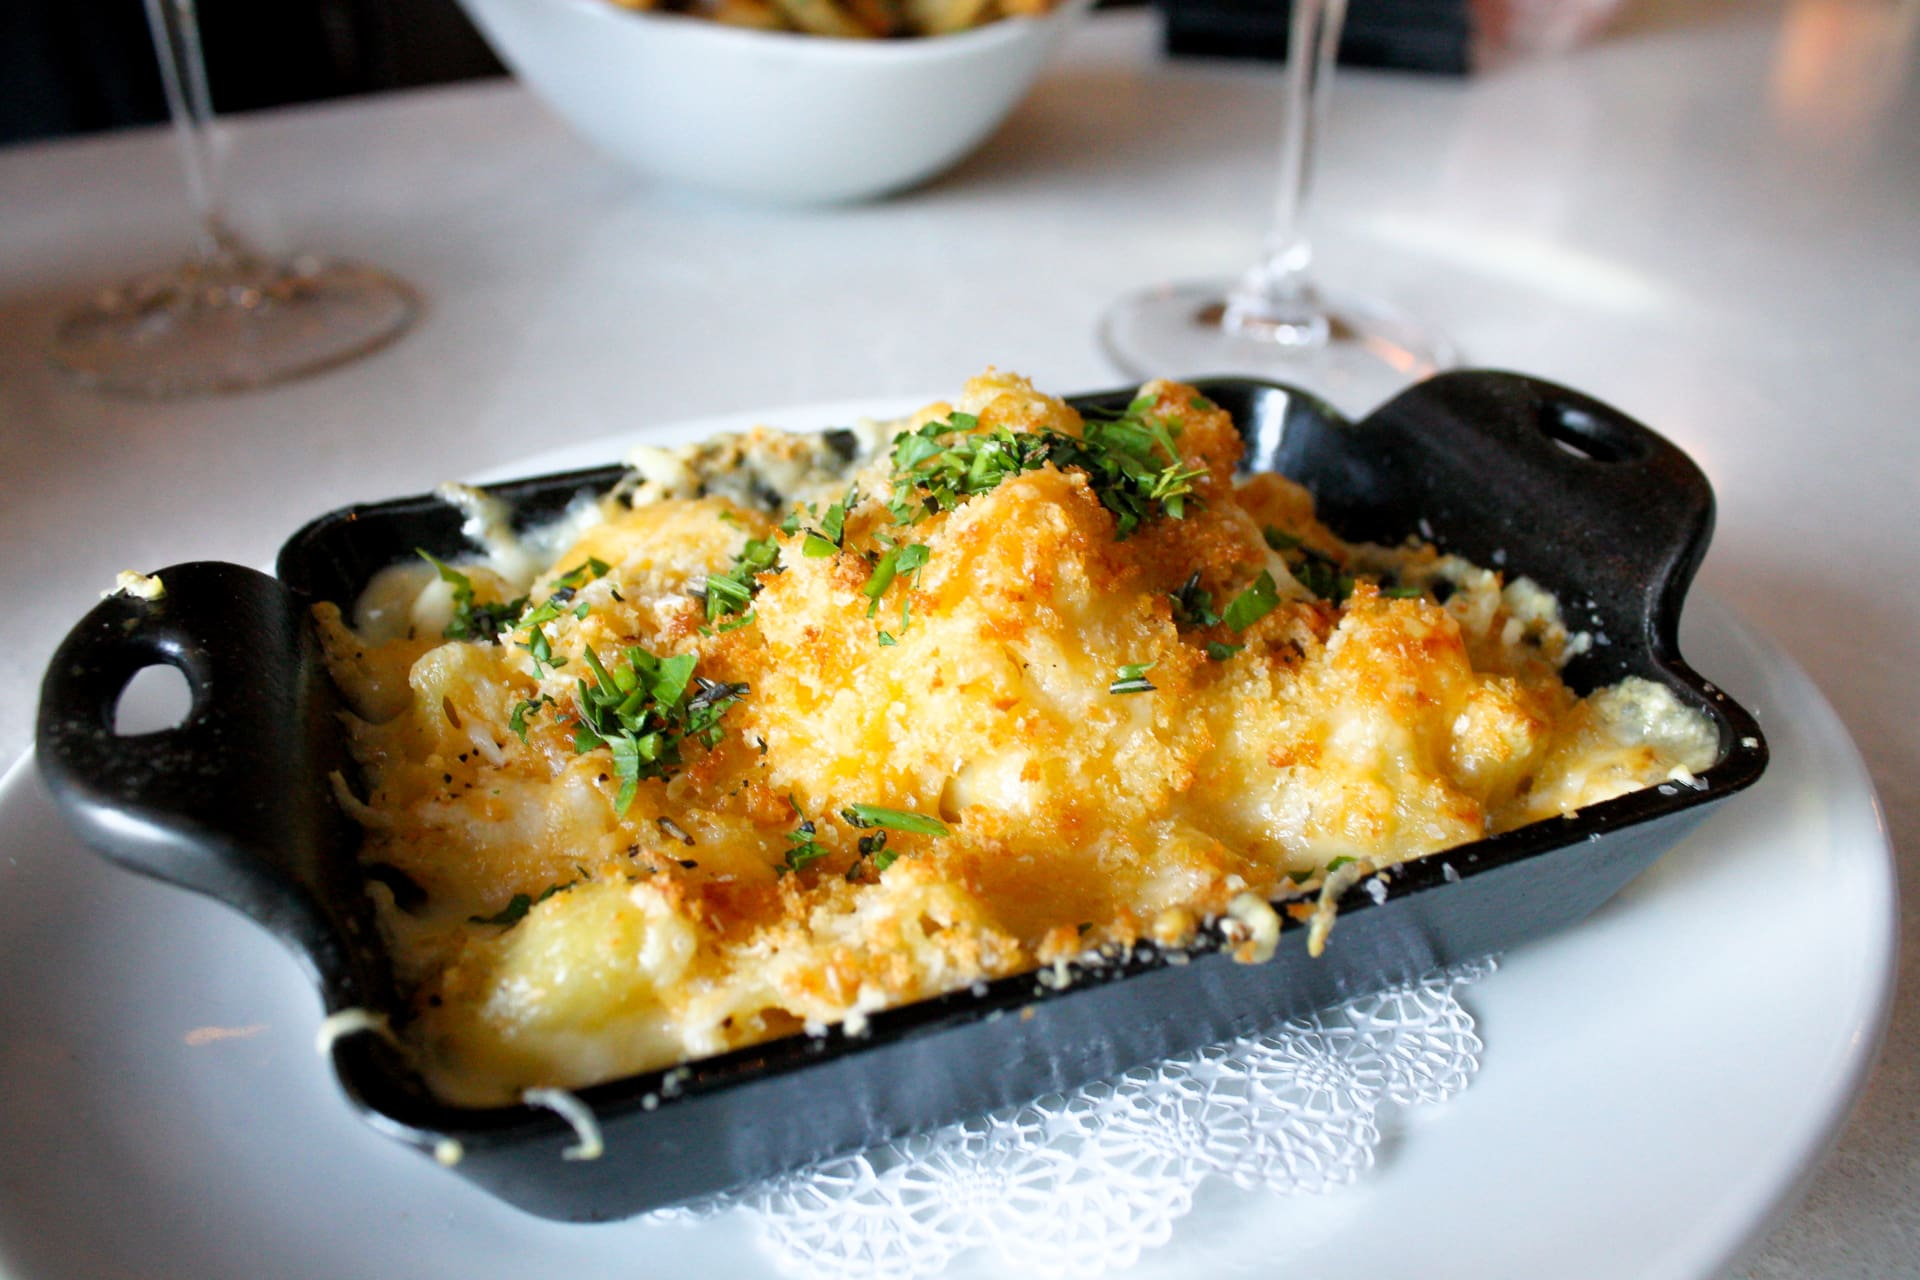 Skillet of Mac & Cheese